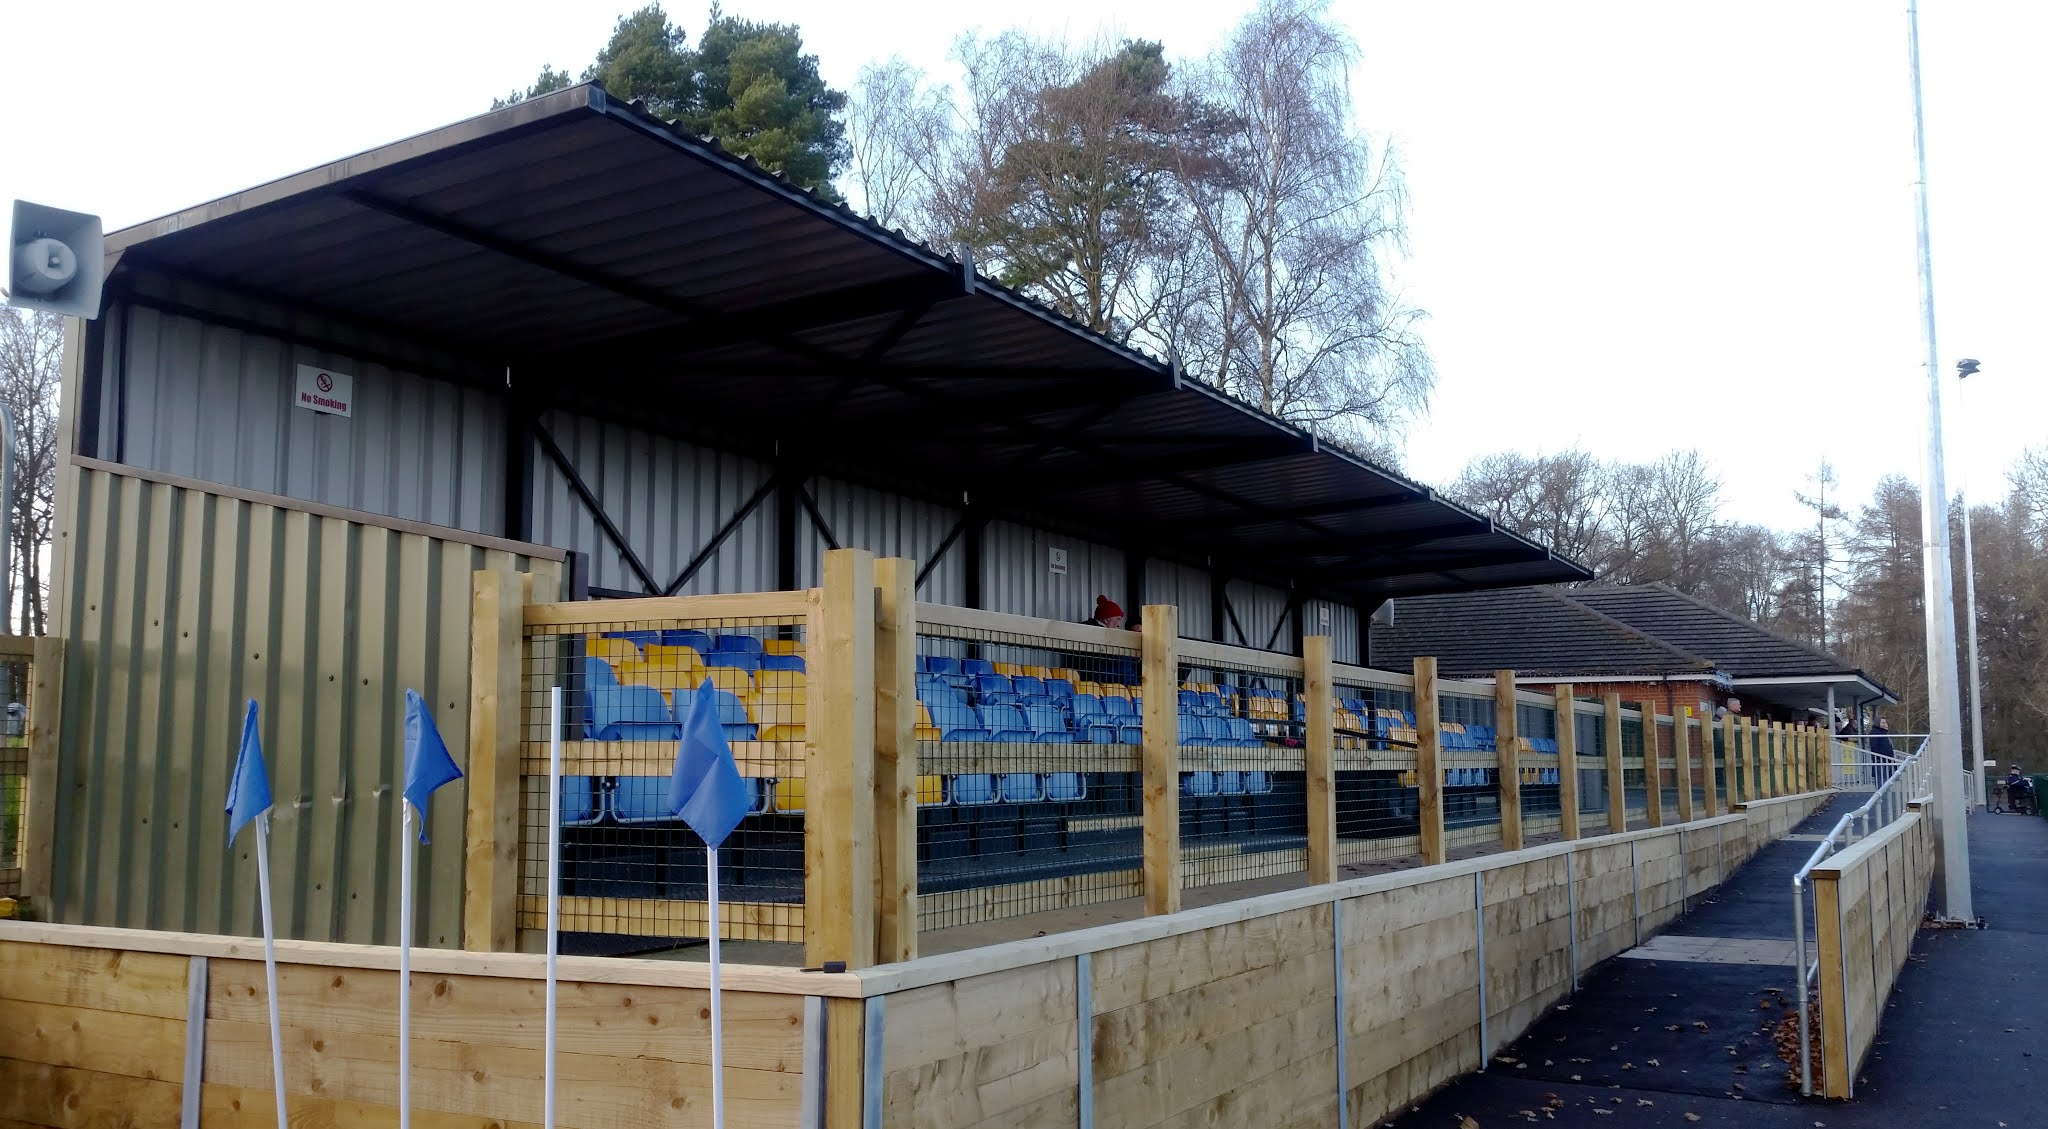 The new seated stand at Ascot United's Racecourse Ground